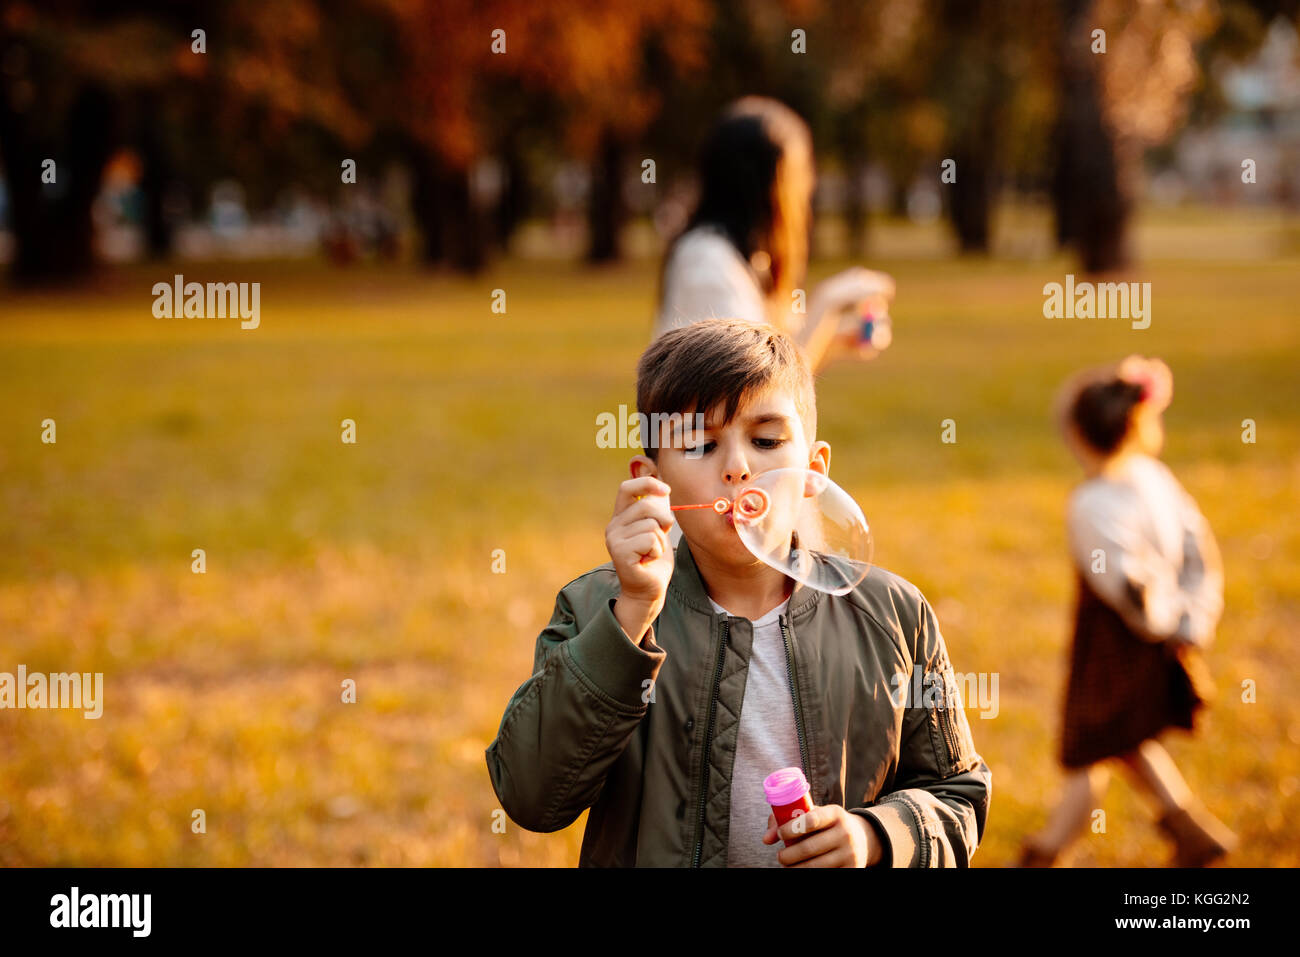 Boy blowing soap bubbles - Stock Image